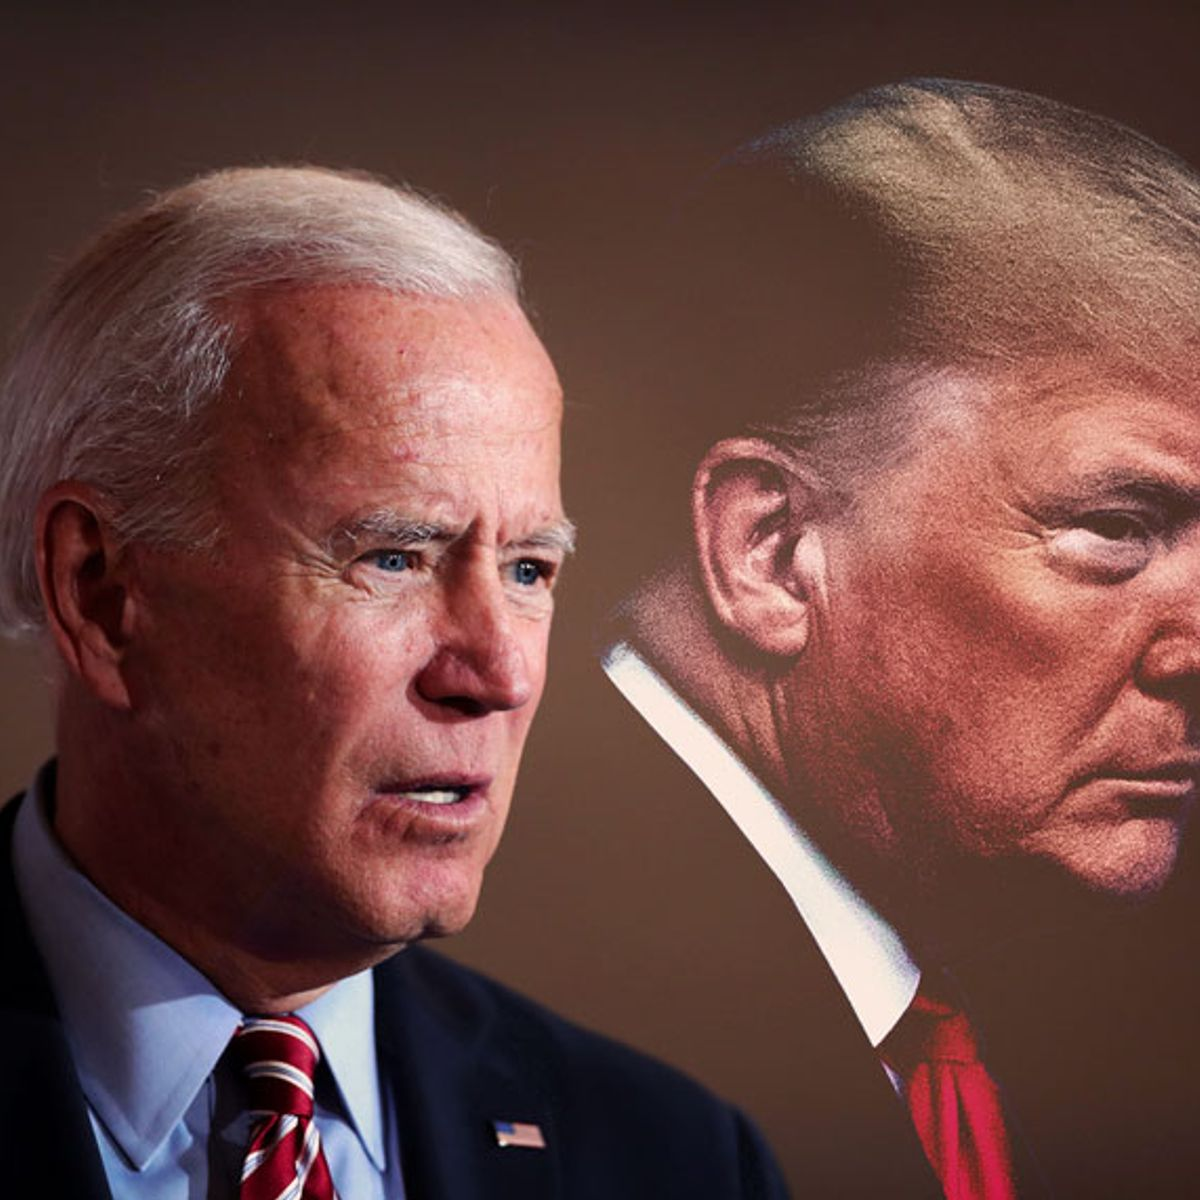 Biden won't voluntarily testify in Trump's impeachment trial. Here's what that means